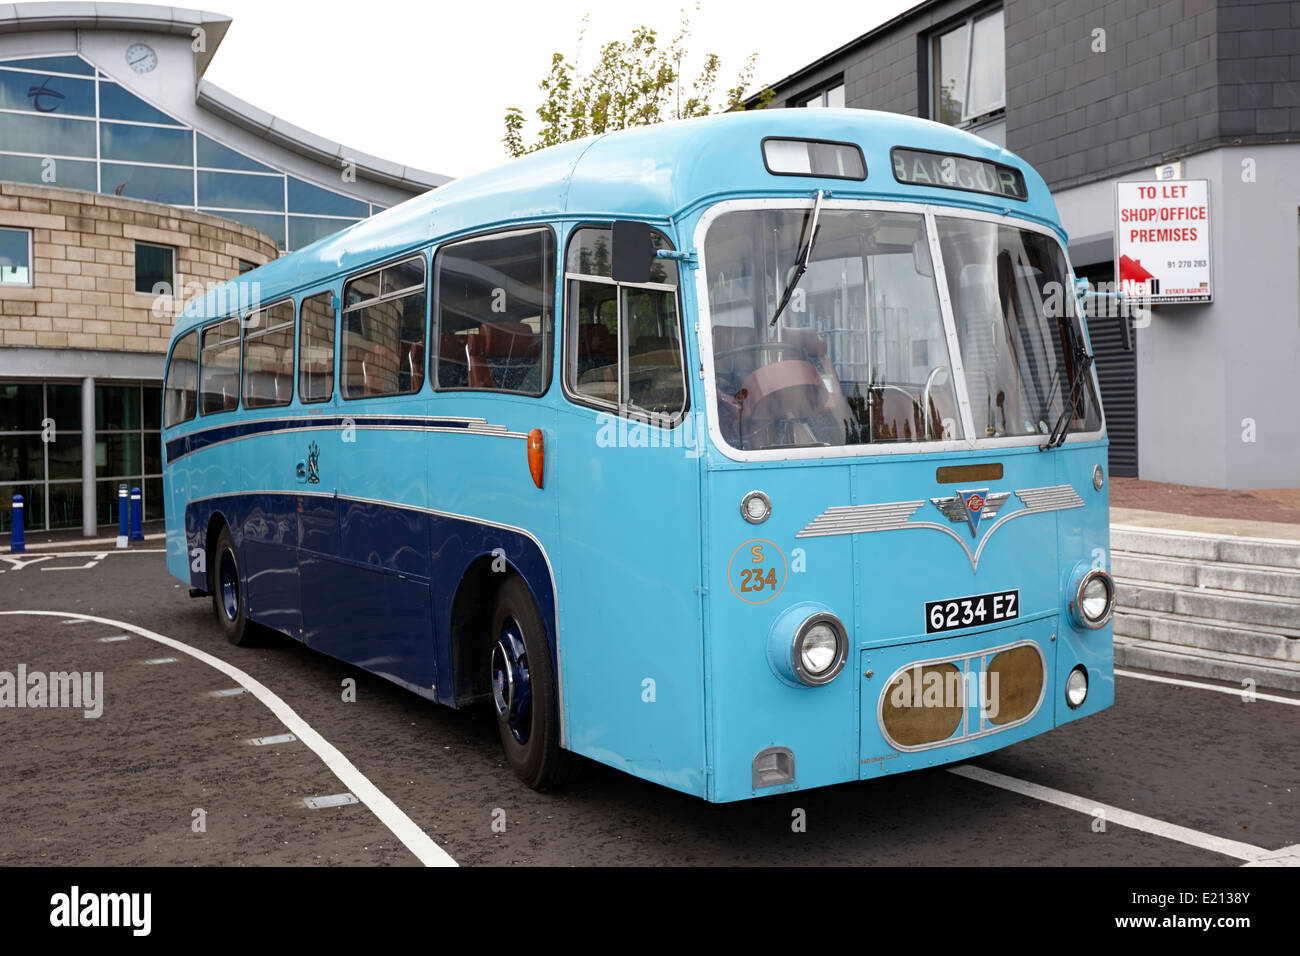 ulster transport authority blue livery aec reliance bus at bangor northern ireland - Stock Image